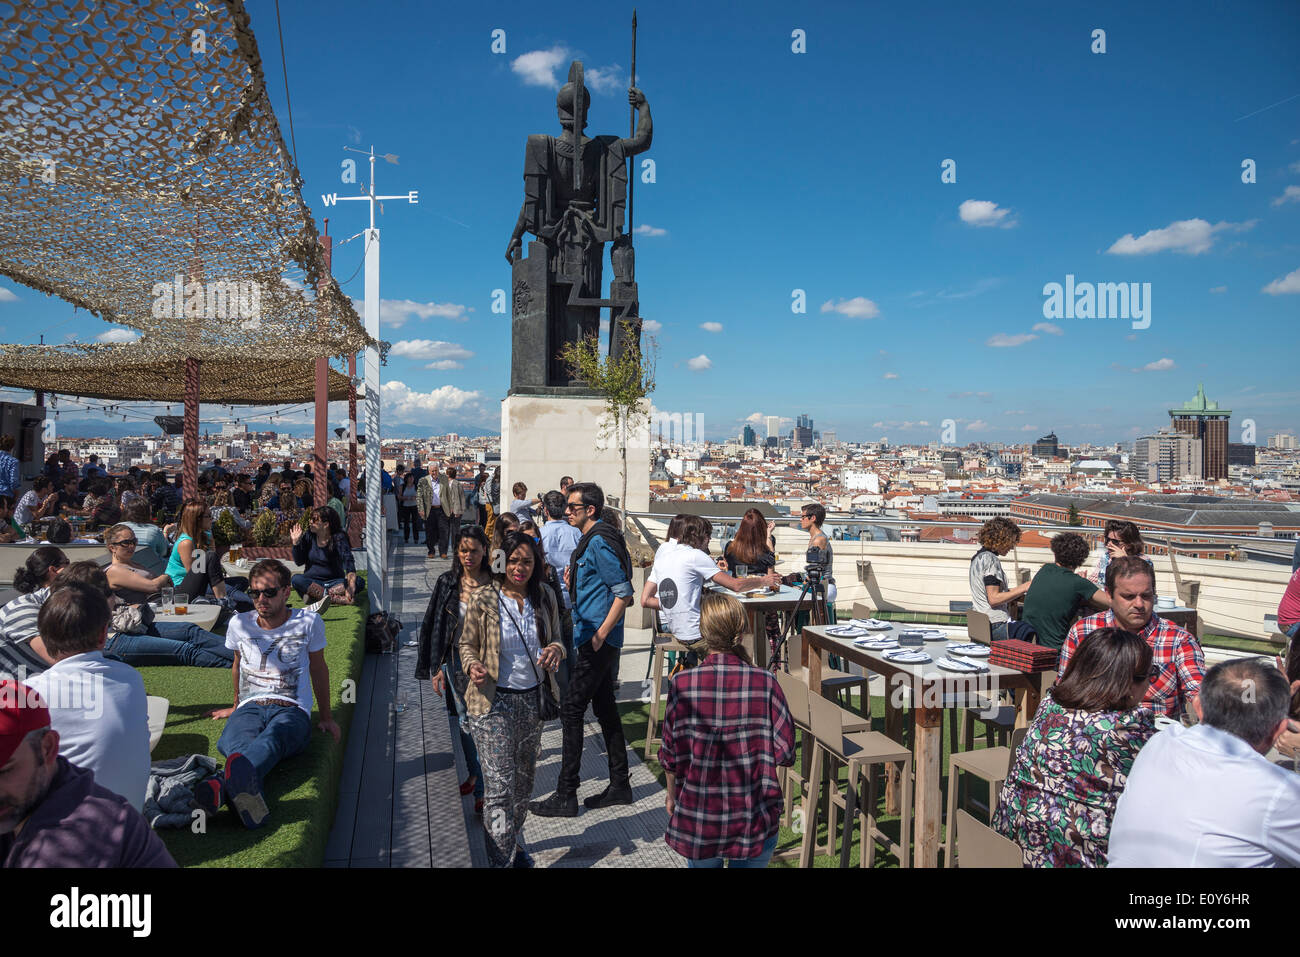 The rooftop cafe bar of the Circulo de Bellas Artes, with its statue of Minerva, Central Madrid, Spain - Stock Image